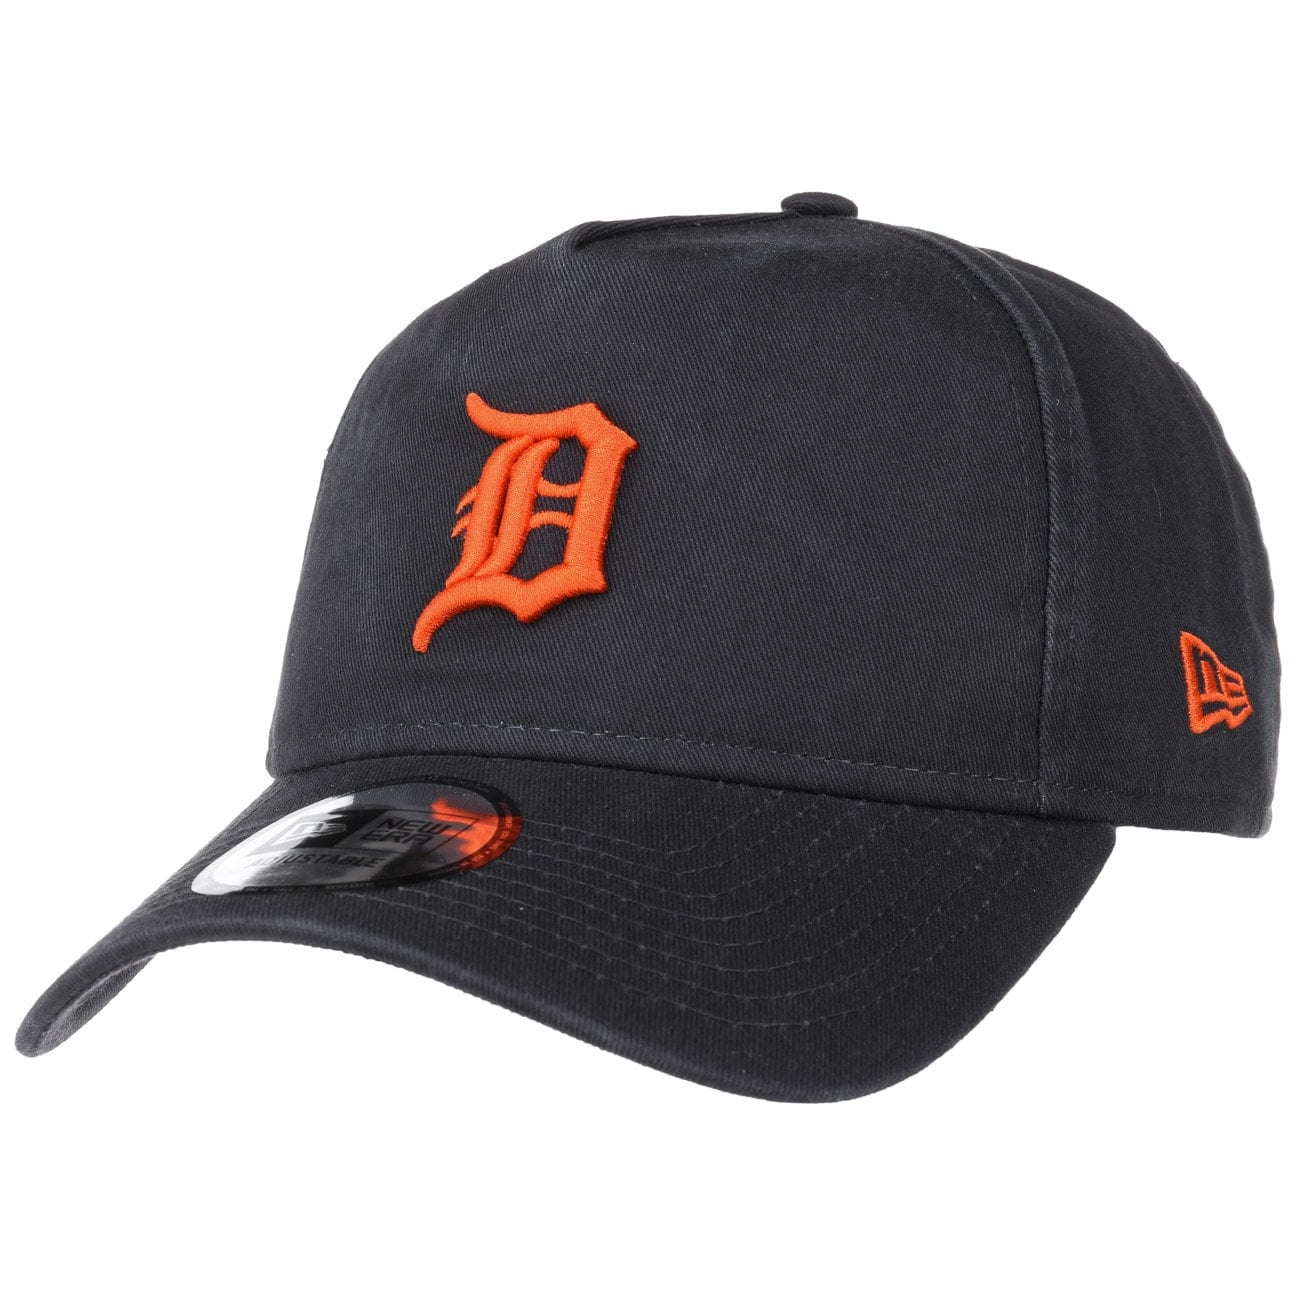 9forty-a-frame-tigers-cap-by-new-era-basecap